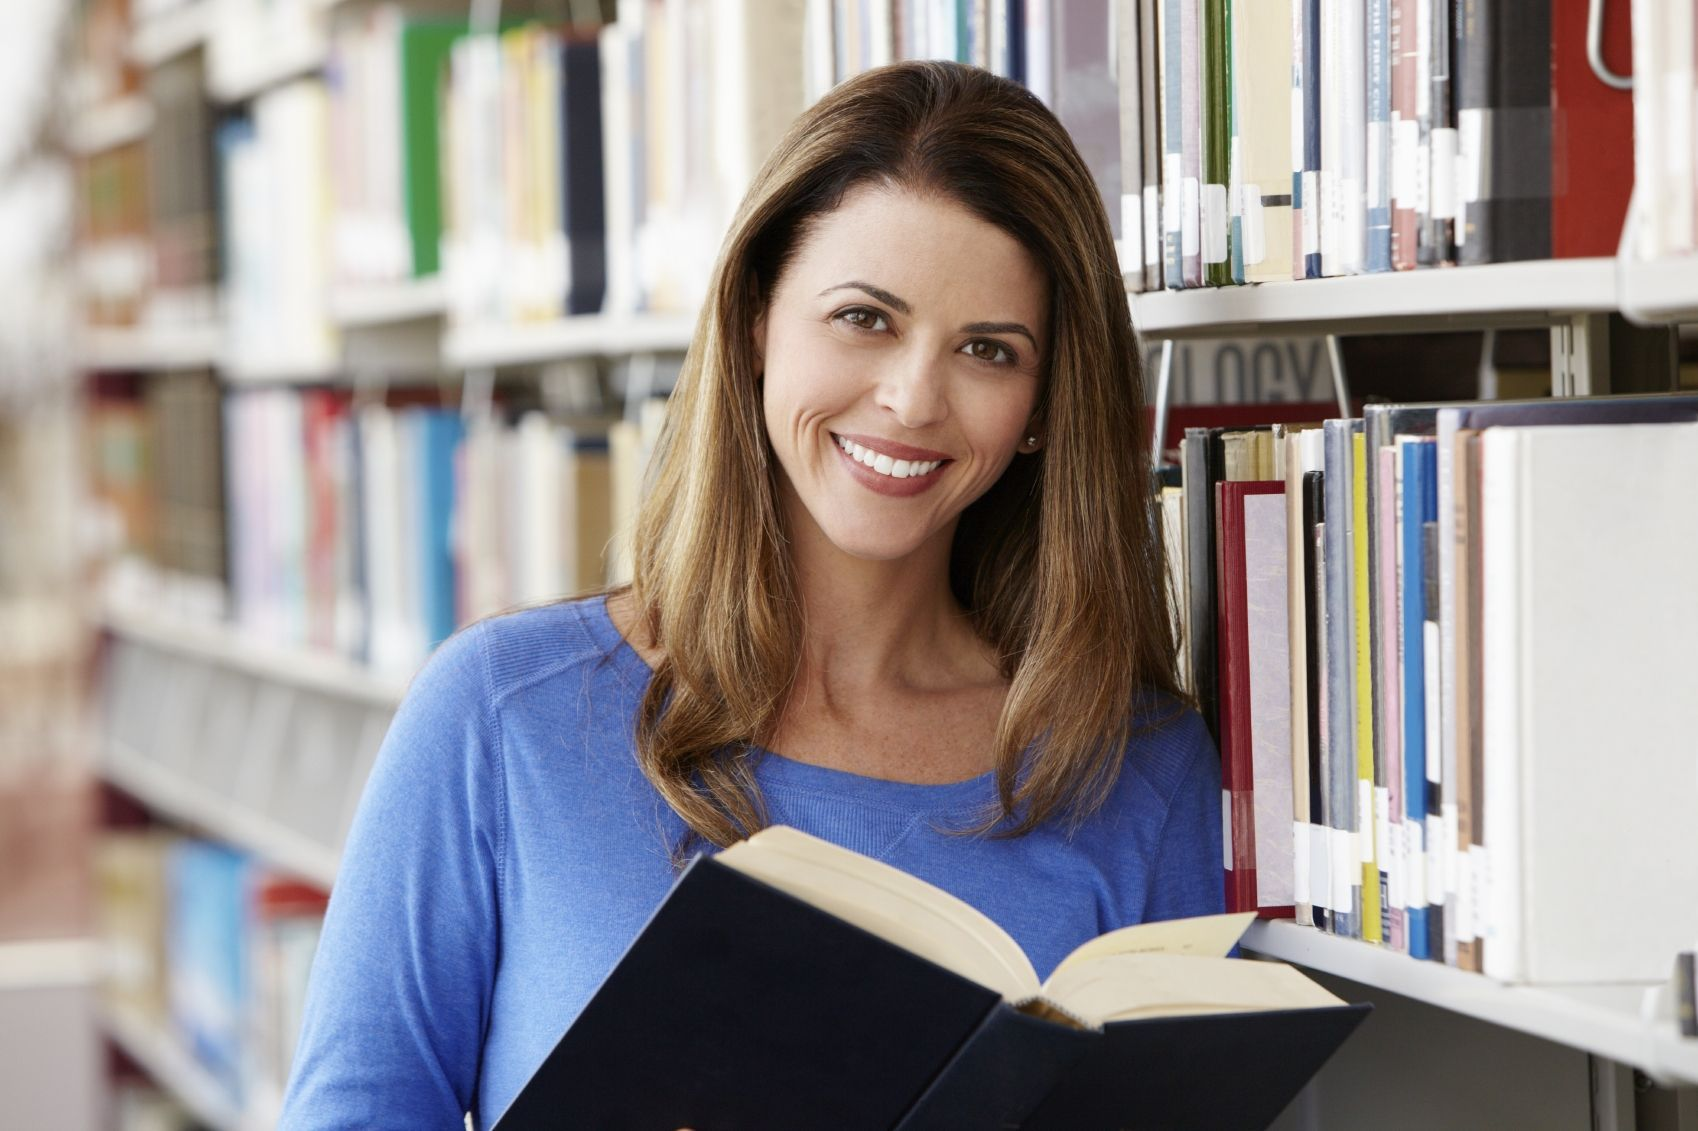 College papers writing services